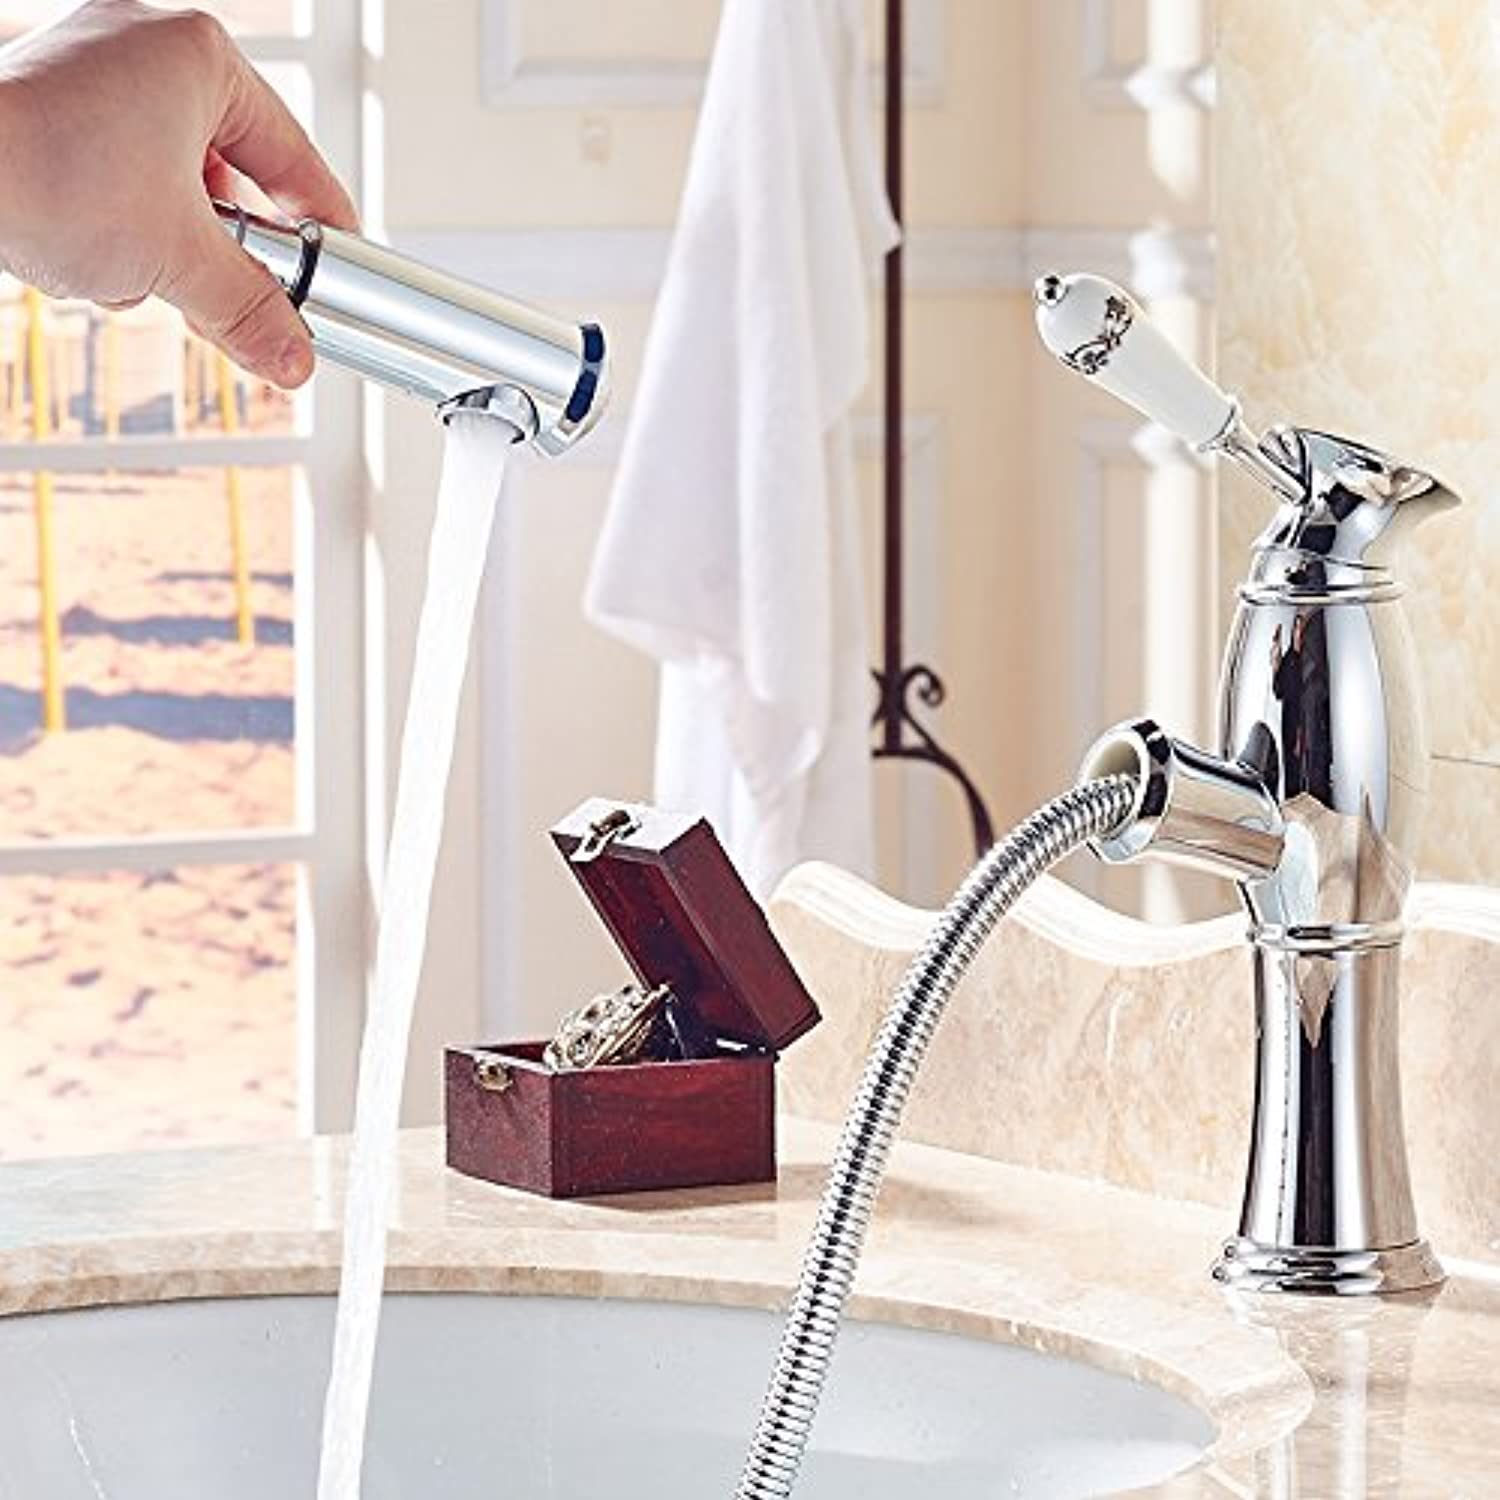 Hlluya Professional Sink Mixer Tap Kitchen Faucet Ya poetry pull basin faucet full-scale copper cold water wash-basin sink tap on the lower leg - Antique color, Low Pin - Silver